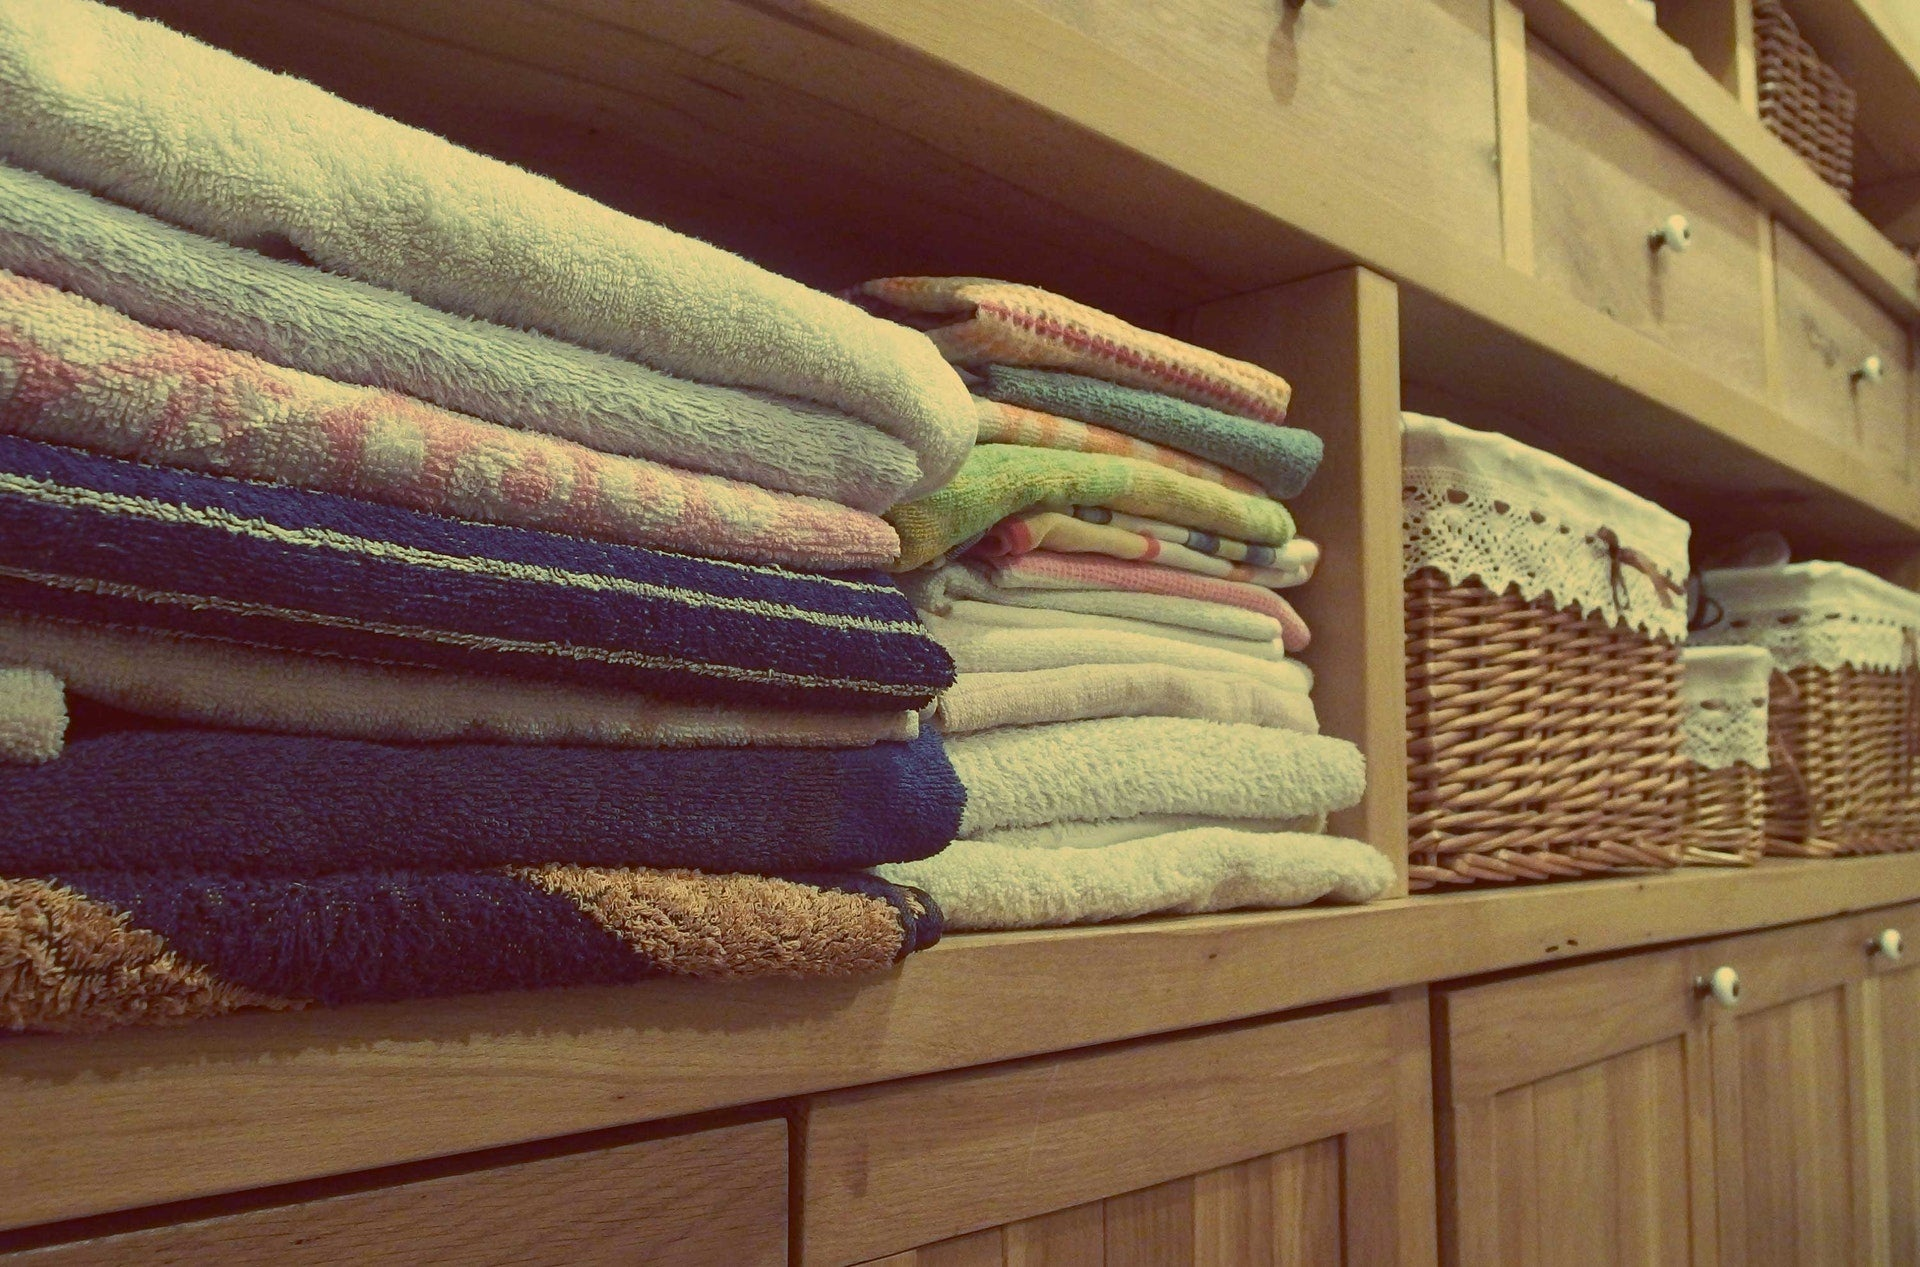 Why is an Organized Closet so Important?